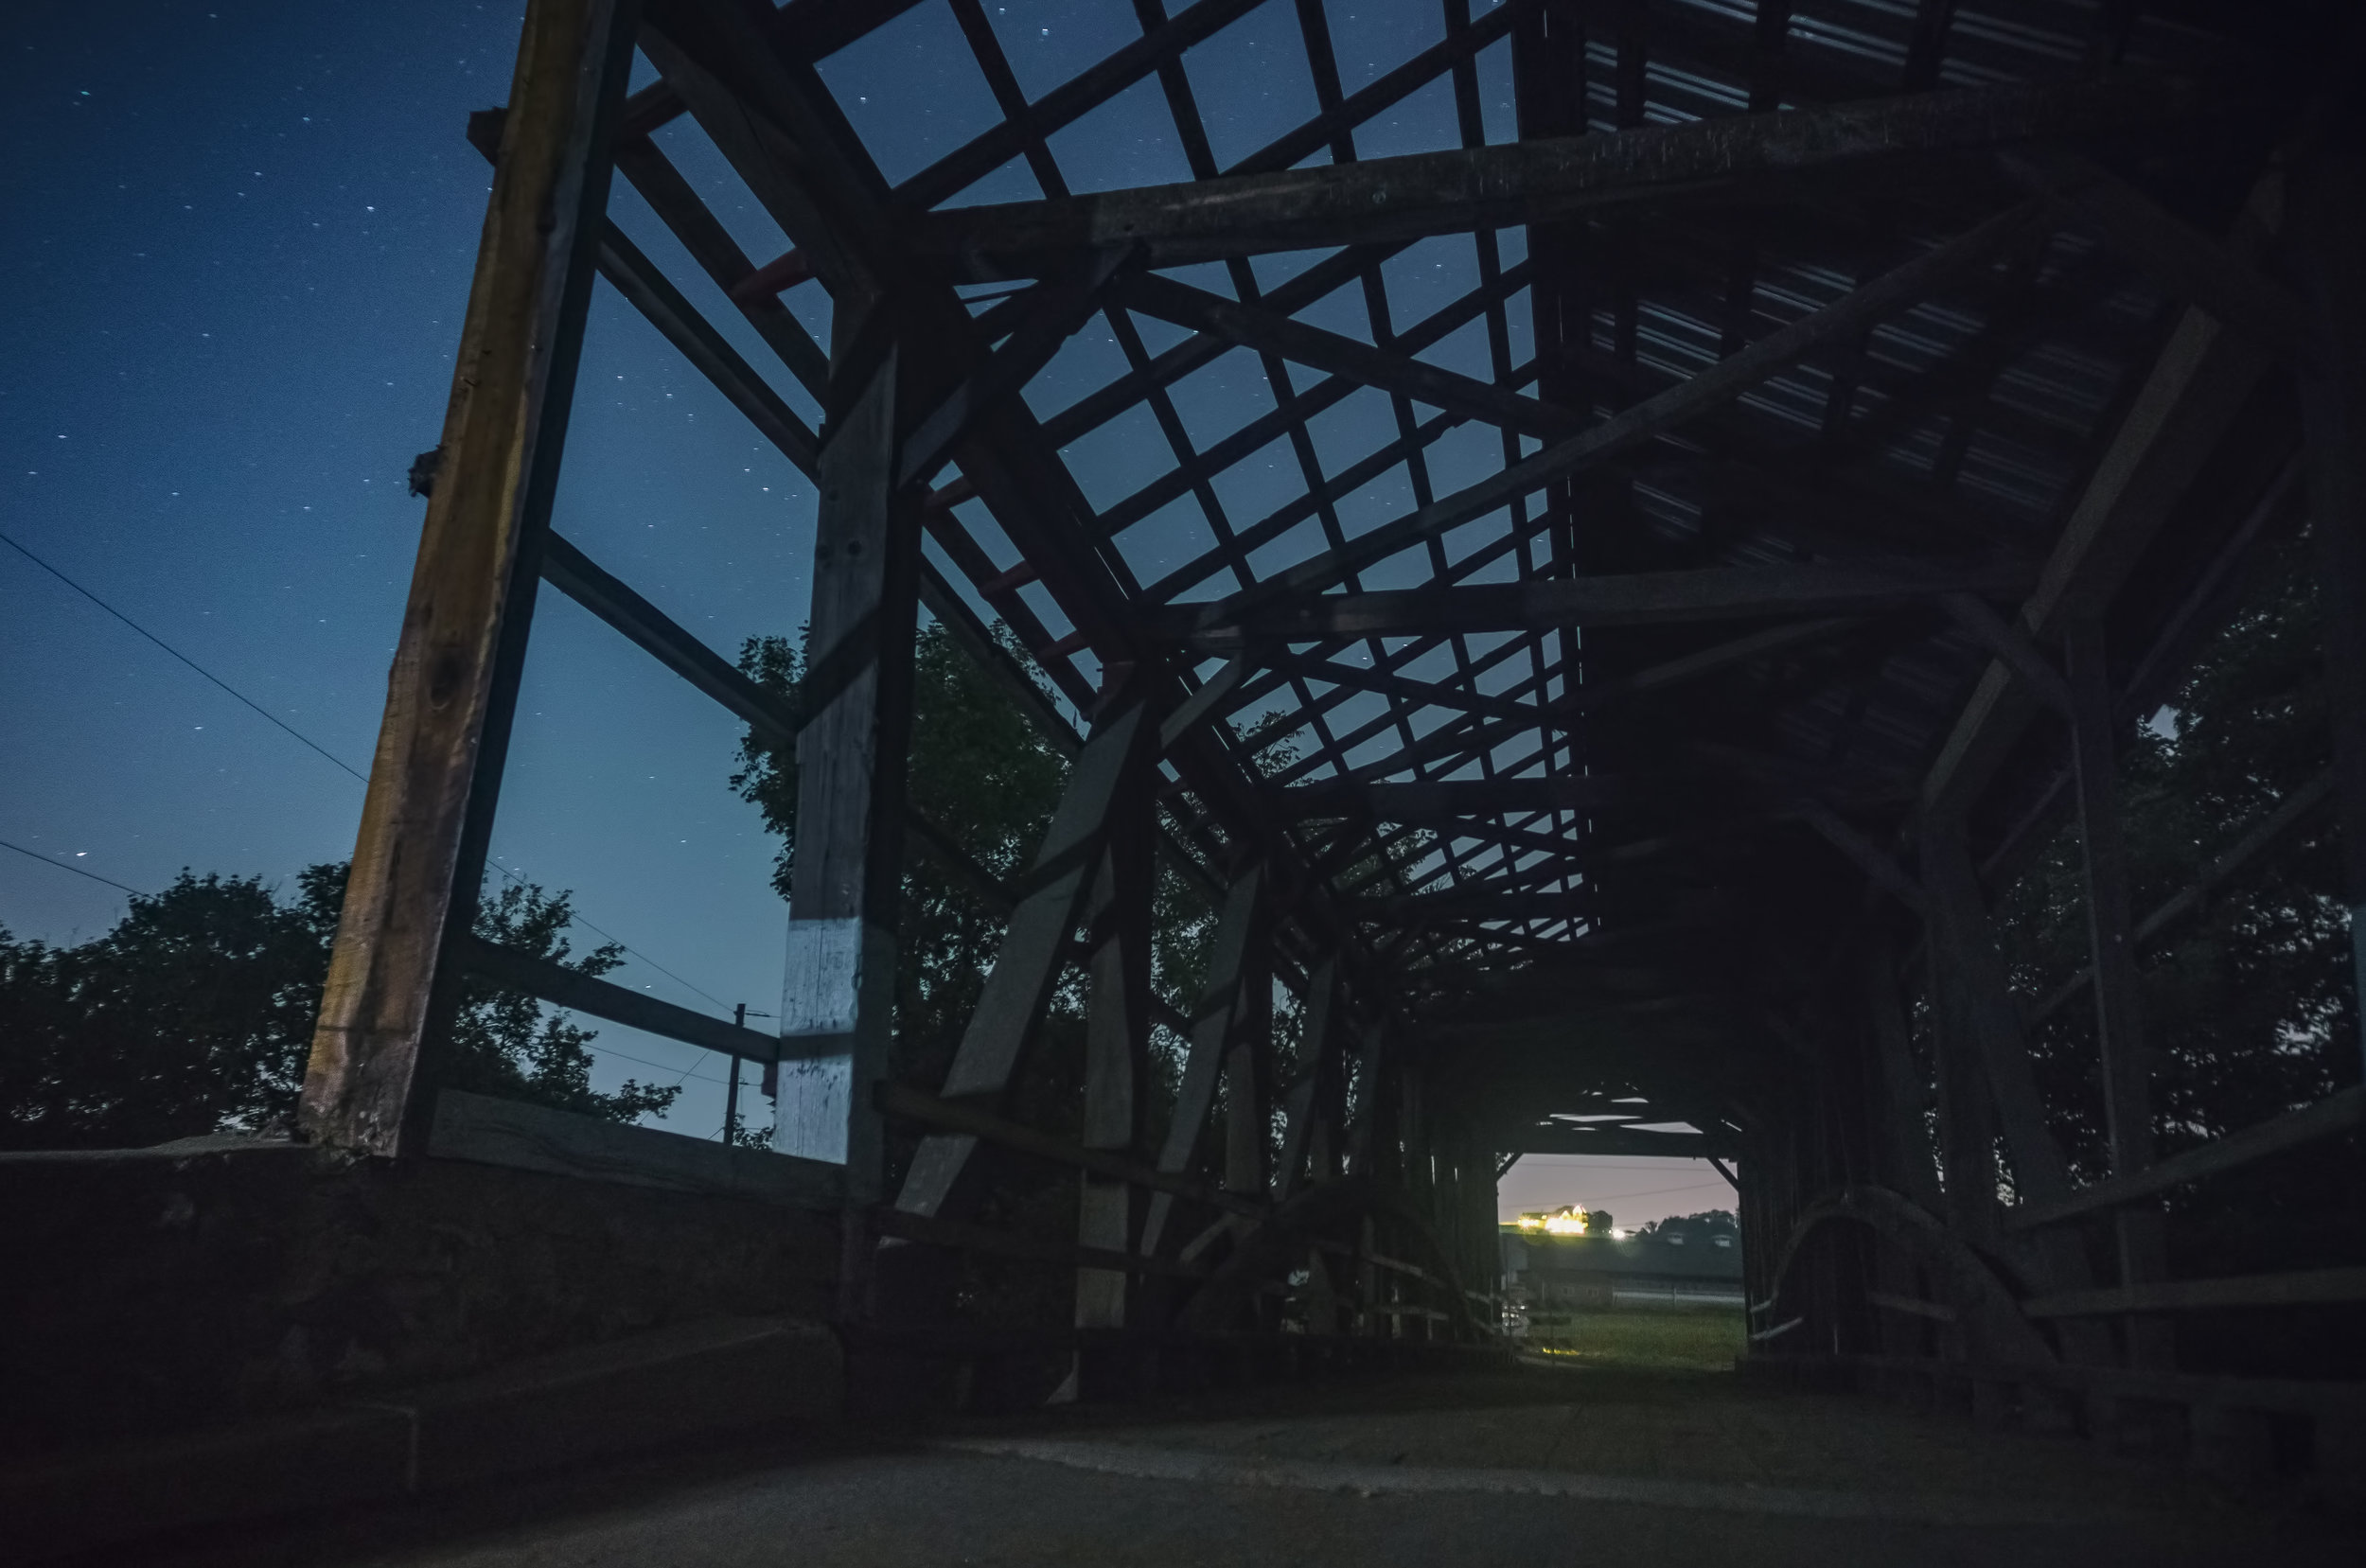 Stars through the roof of the Covered Bridge on Cats Back Road.